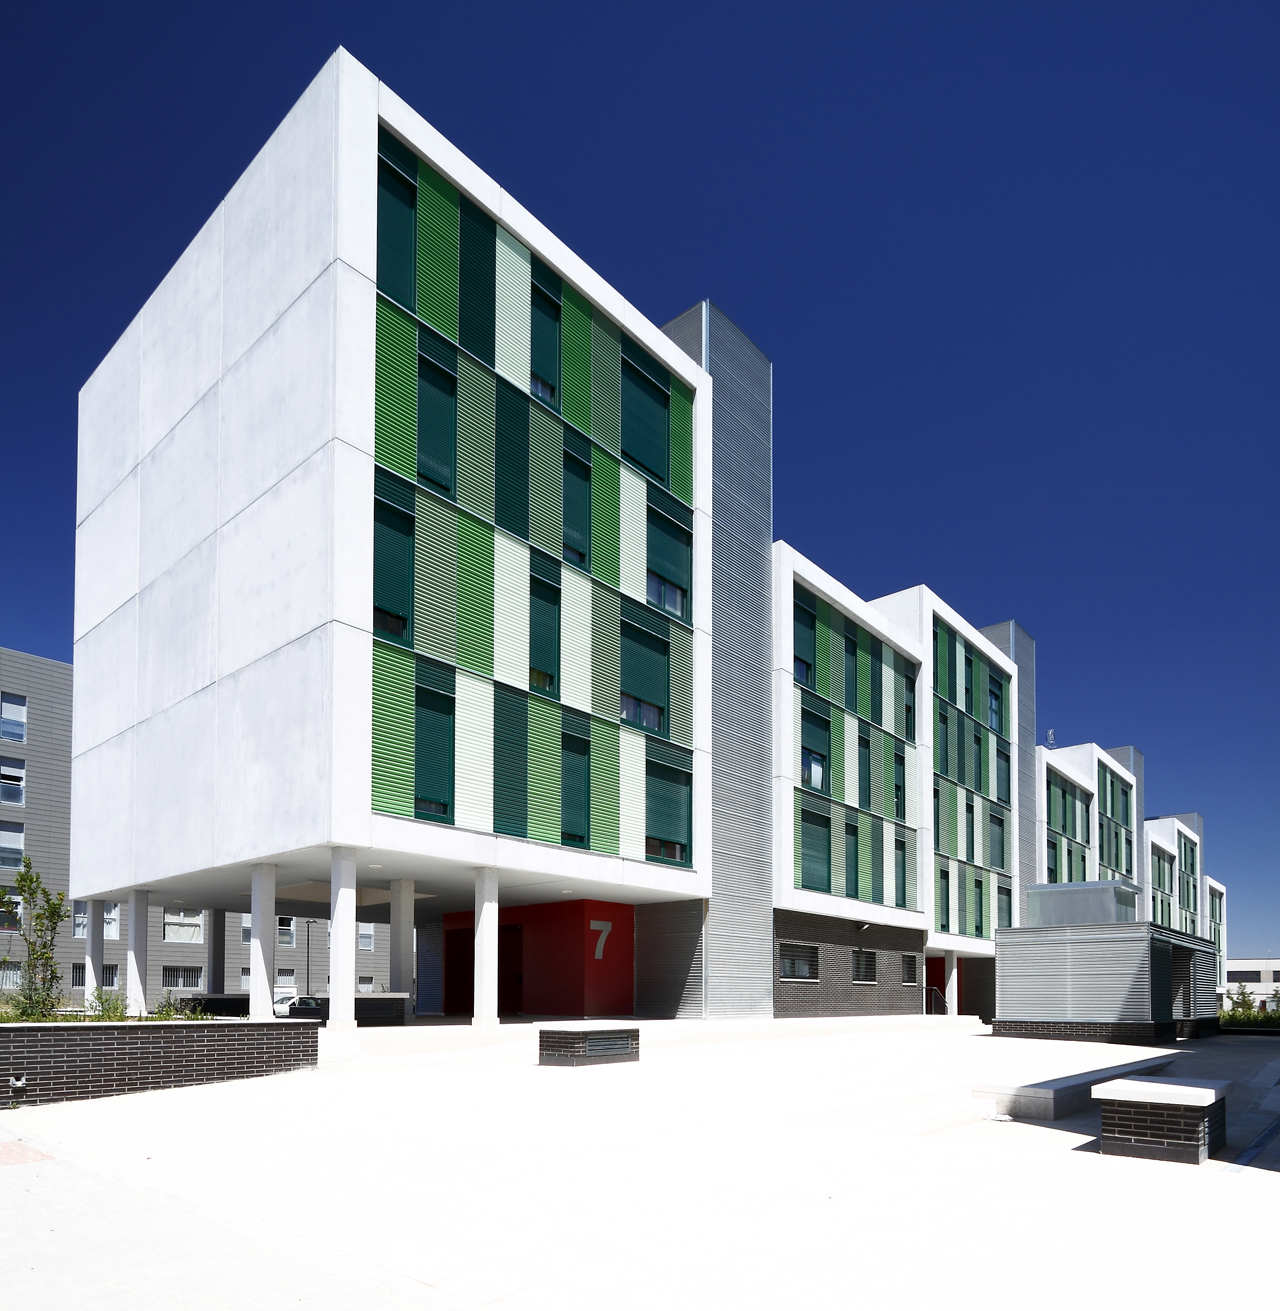 Nice Low Income Apartments: 120 Social Housing In Parla / Arquitecnica